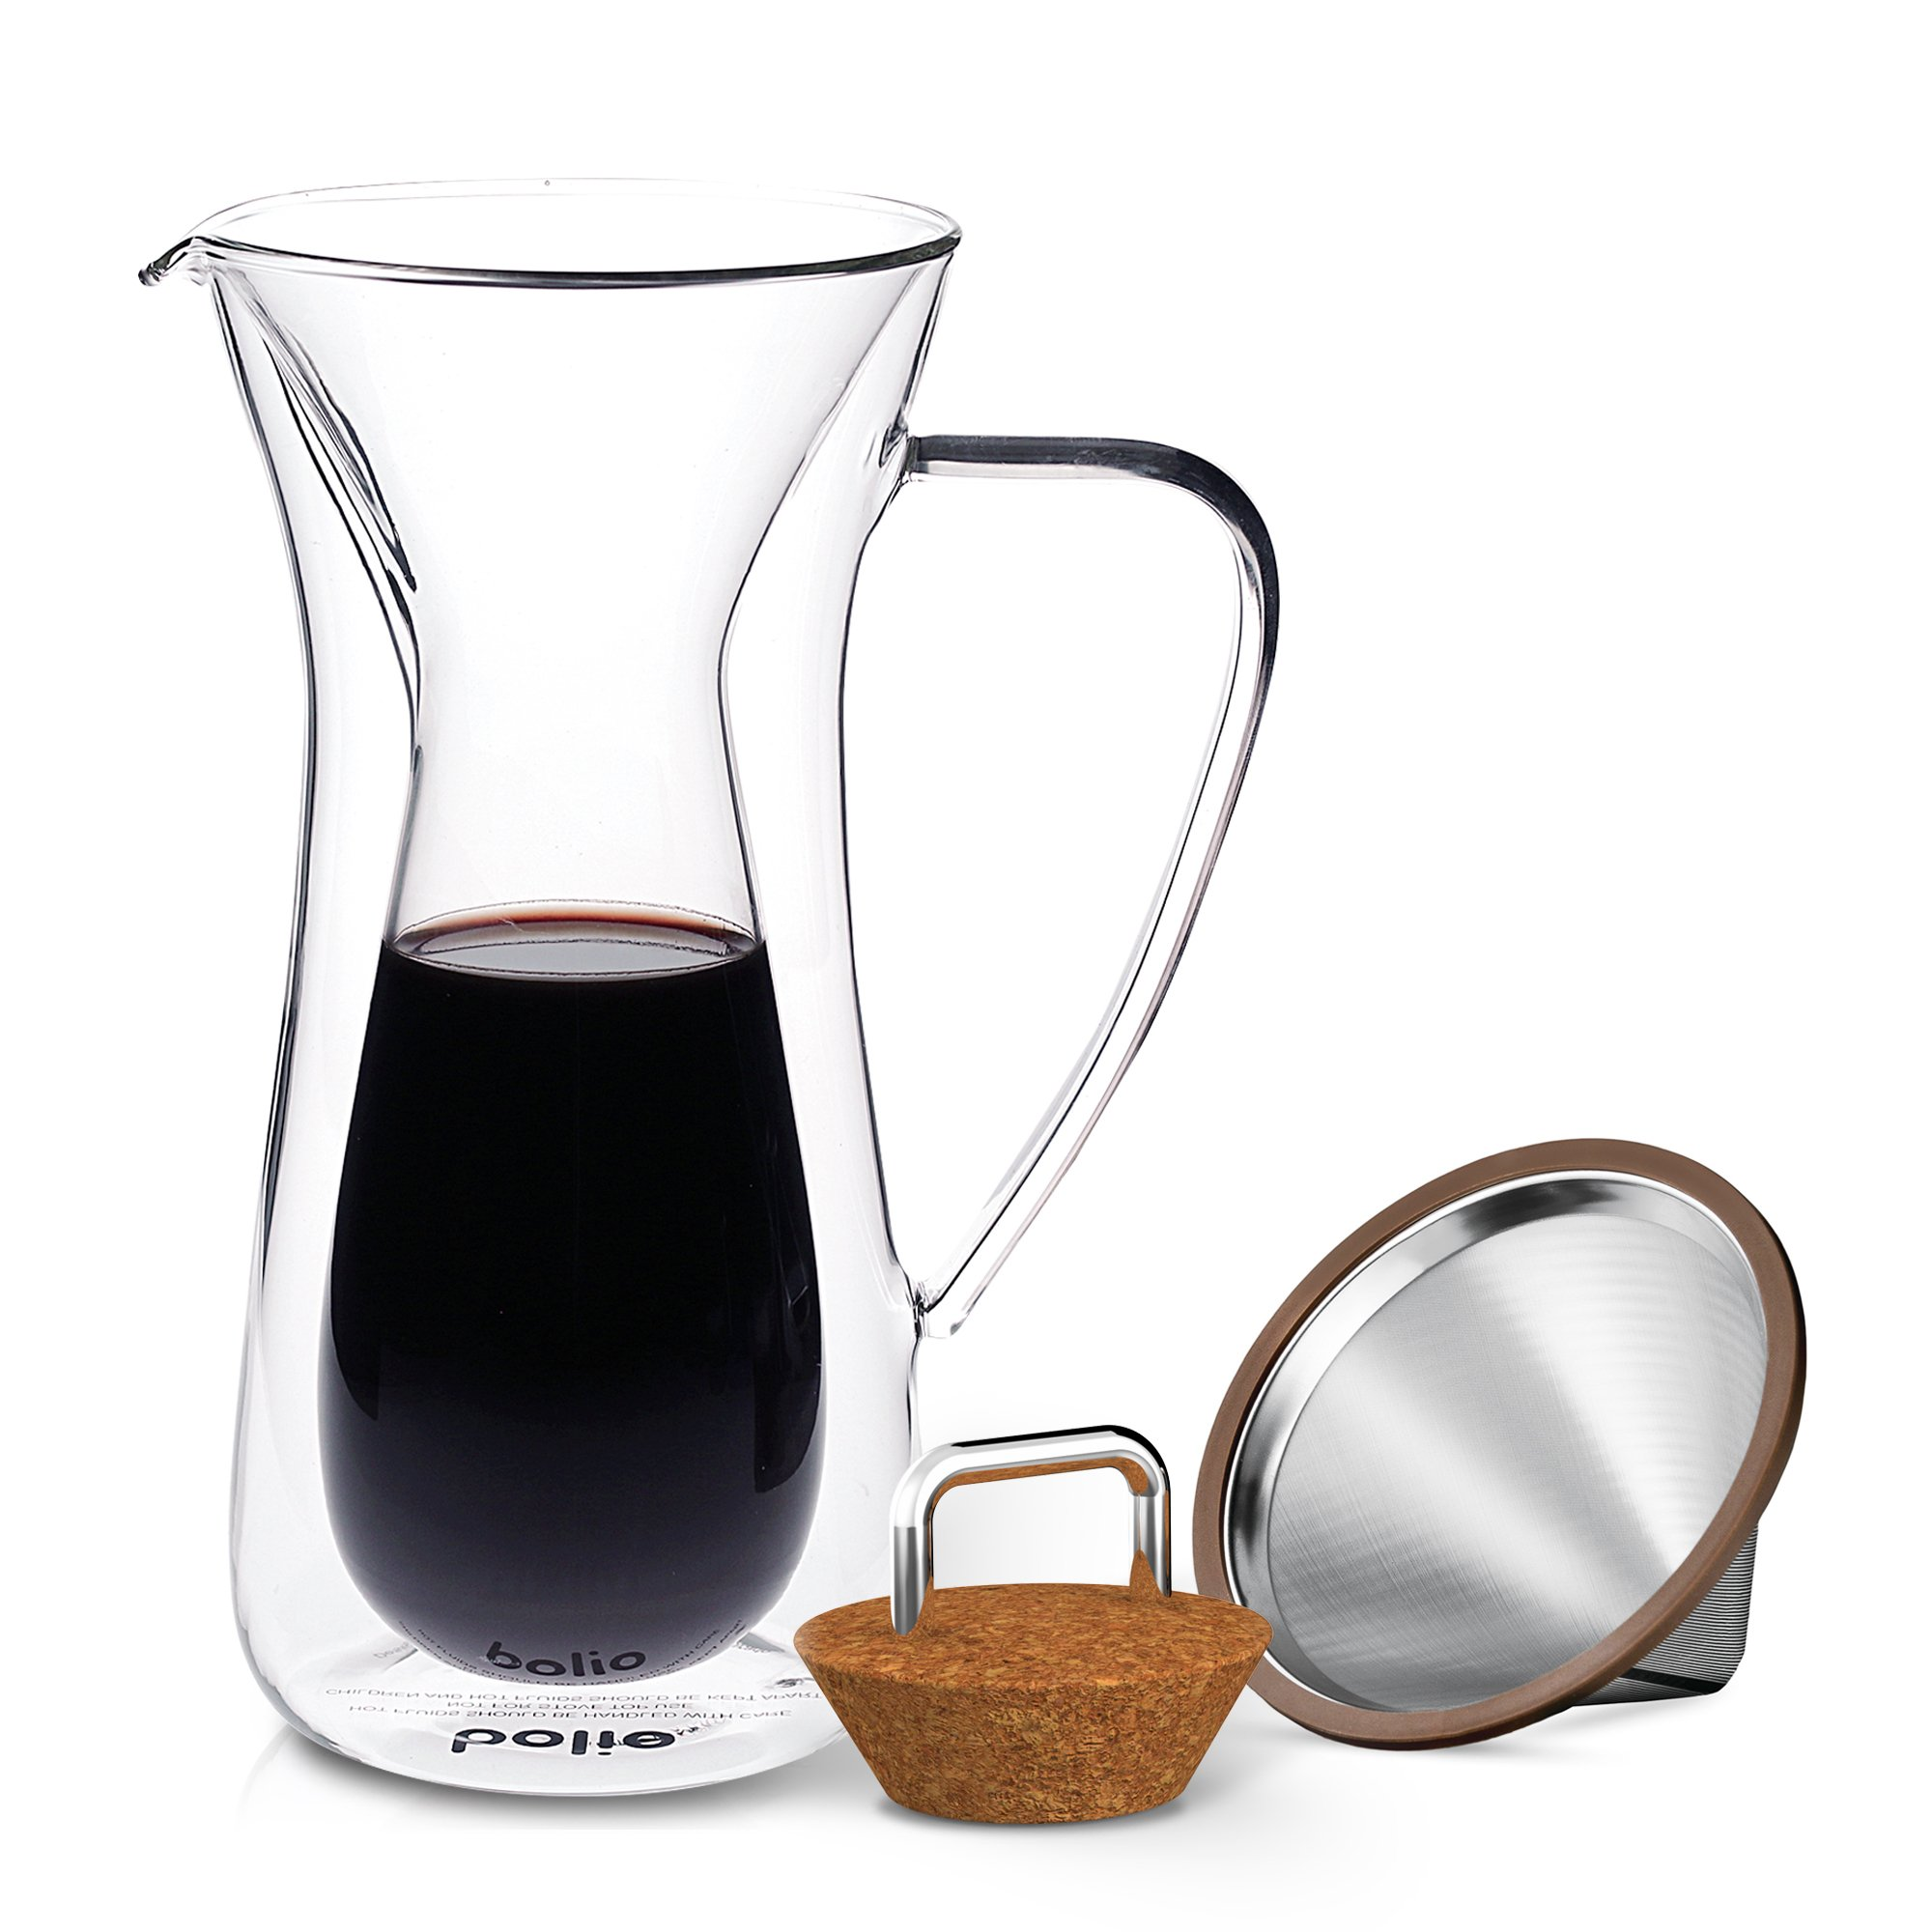 Double Wall Pour Over Coffee Maker With Stainless Steel Double Wall Cone Filter, Insulated Coffee Glass Carafe with Cork Lid, Best For Osaka Goldtone Hiware, Chemex, Hario V60 Coffee Makers By Bolio by Bolio